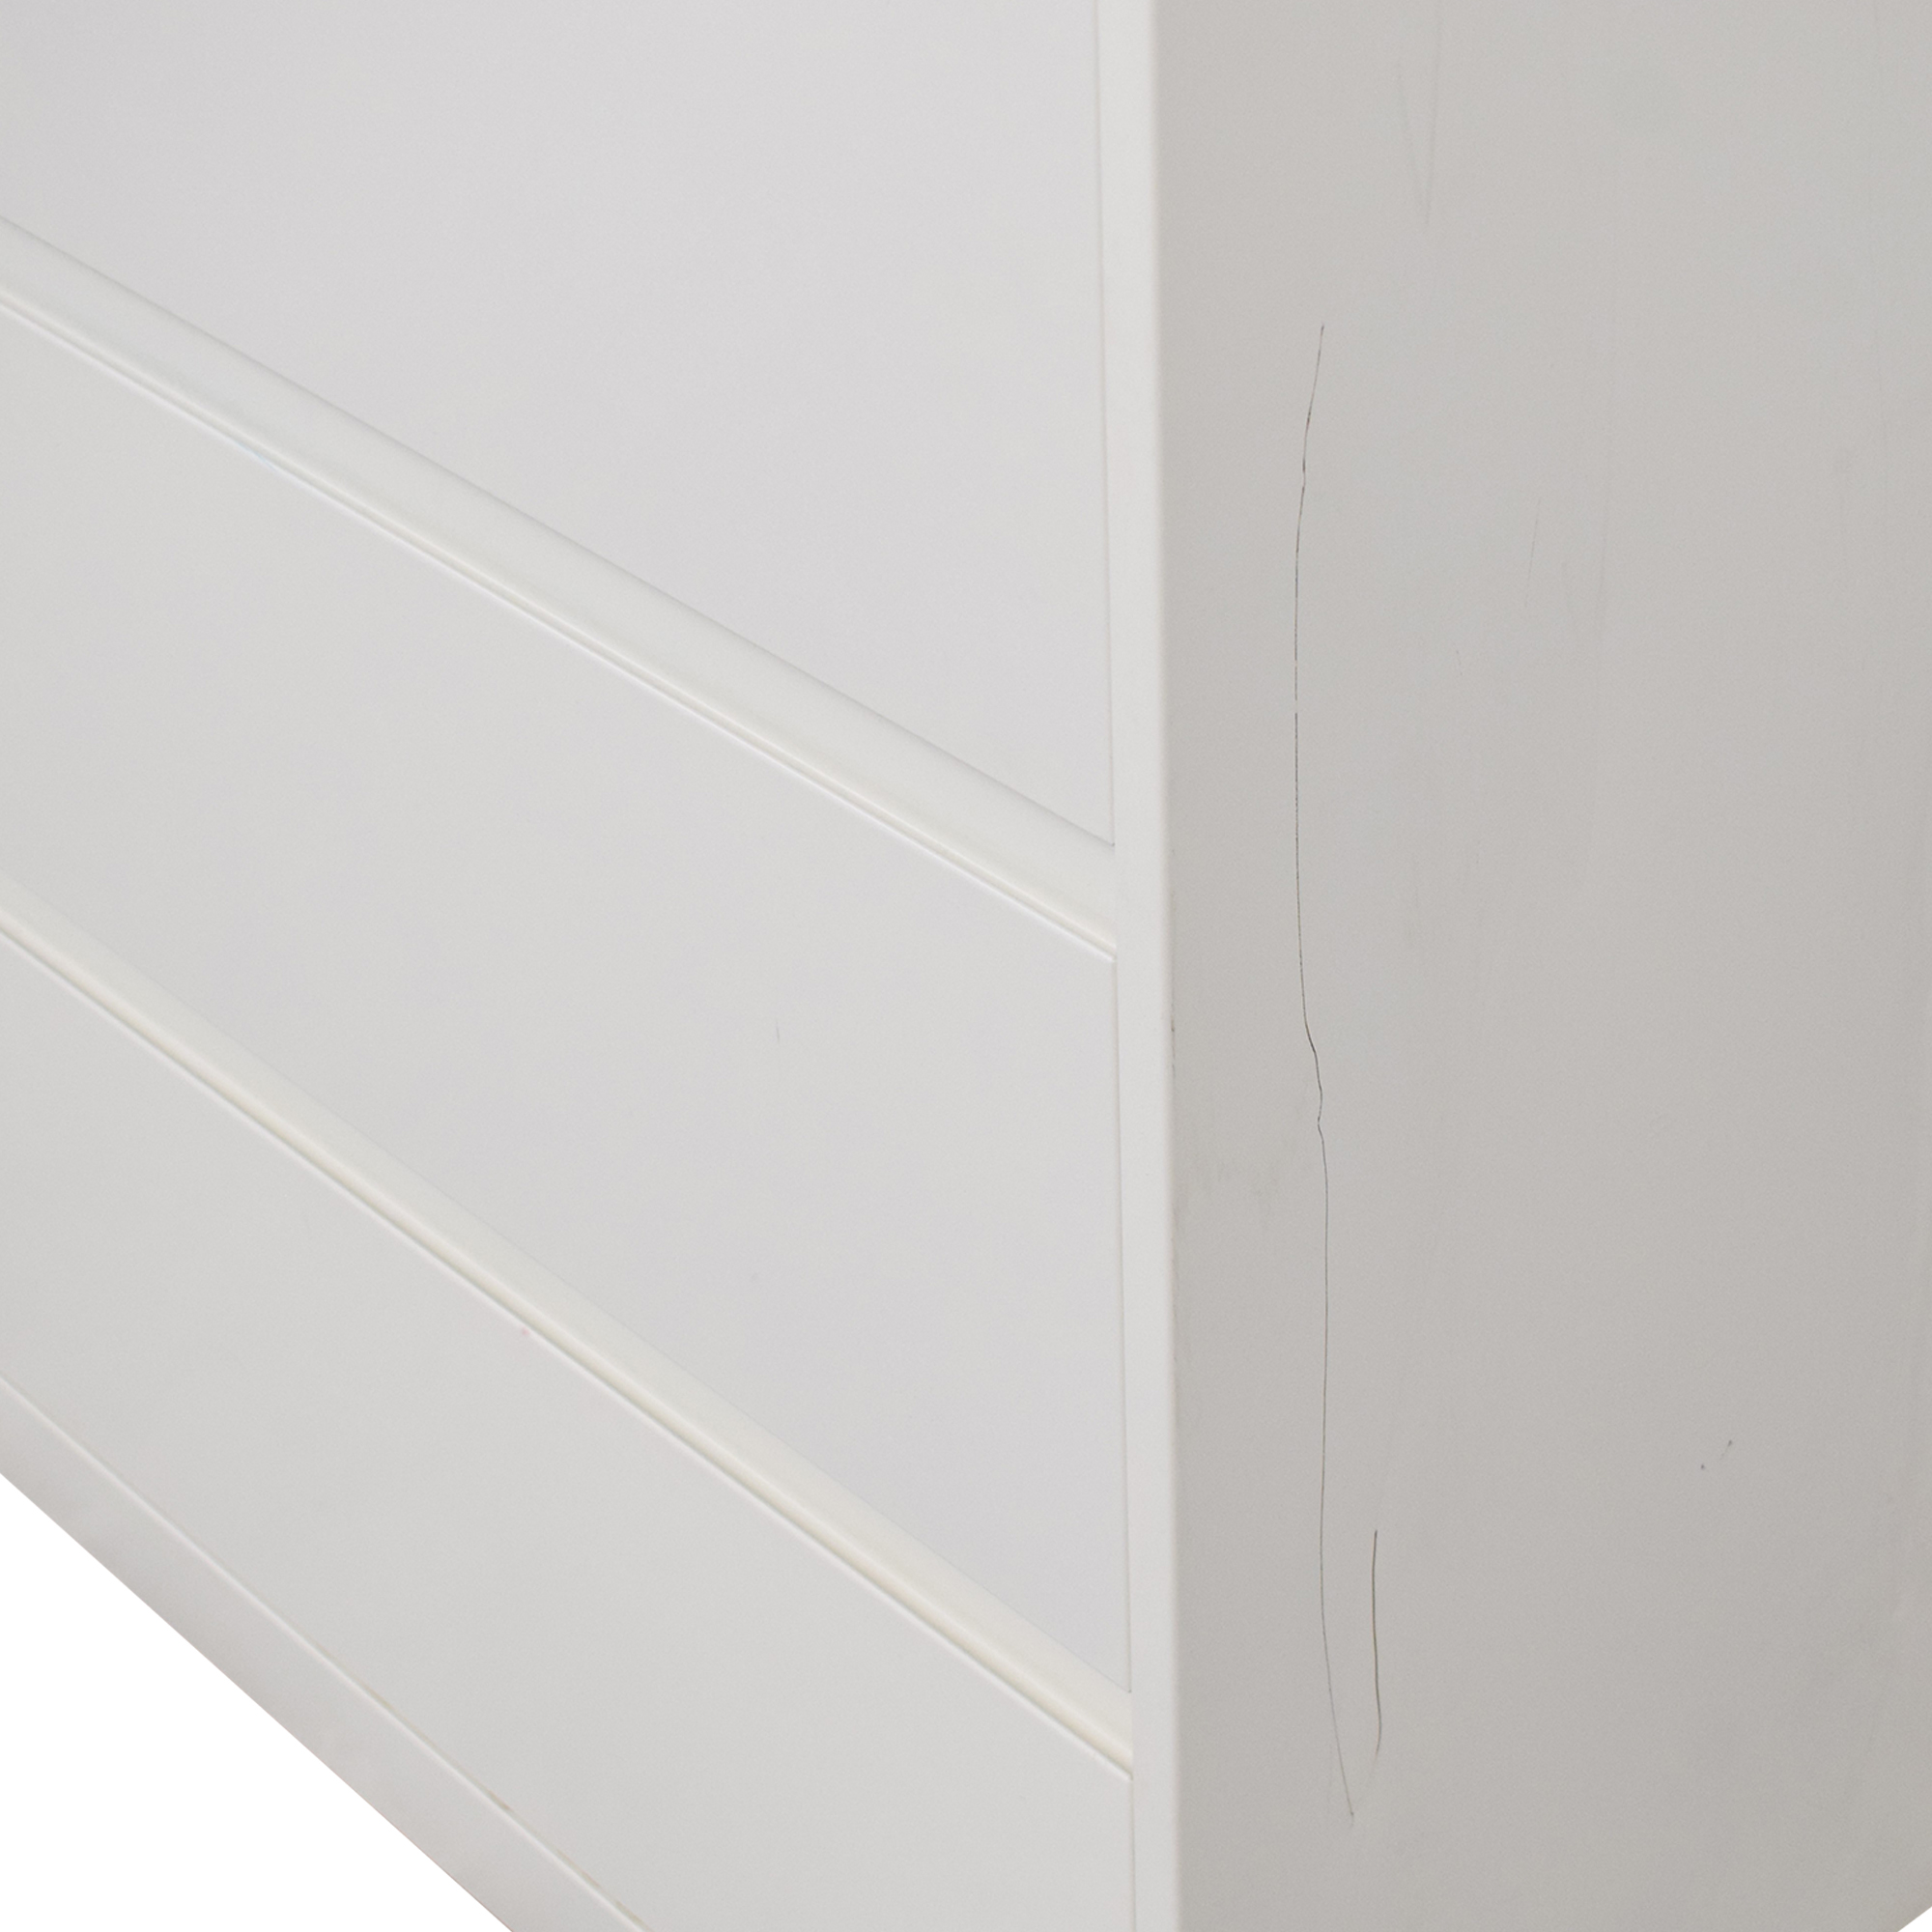 Steelcase Steelcase Three Drawer Lateral Filing Cabinet Storage